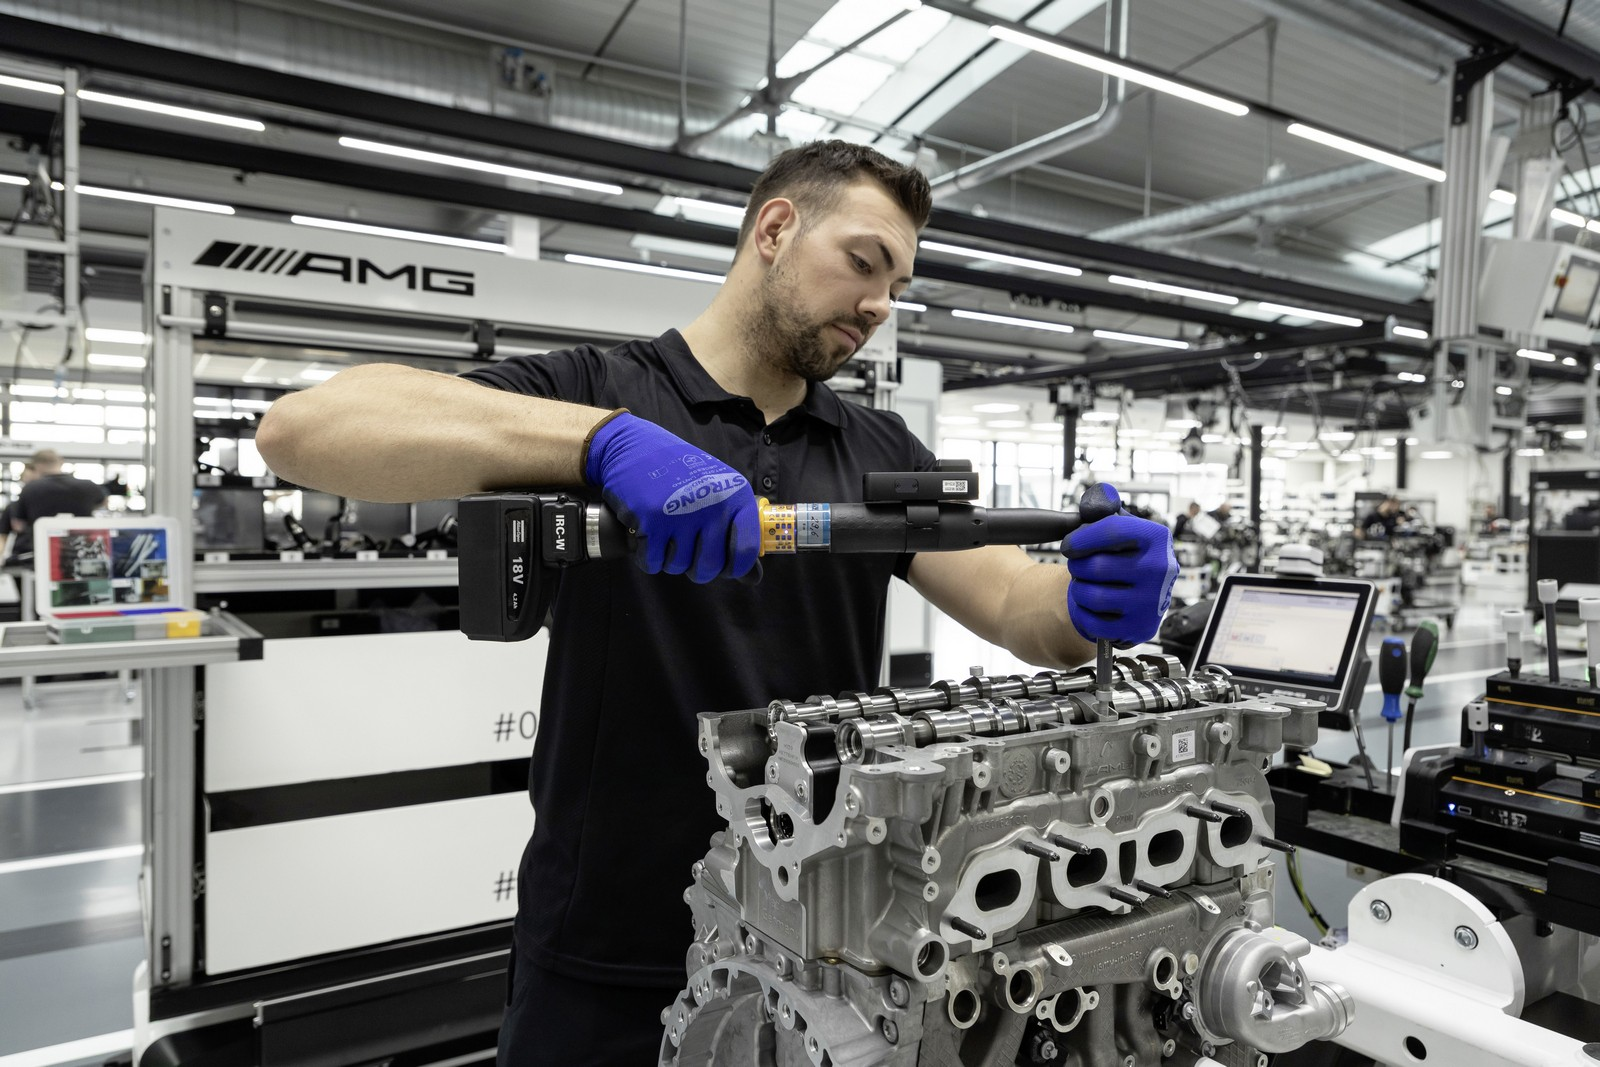 Neuer Mercedes-AMG Vierzylinder-Turbomotor aus hochmoderner Fertigung: Der stärkste Serien-Vierzylinder der Welt, made in Affalterbach New Mercedes-AMG four-cylinder turbo engine from ultra-modern production: The world's most powerful four-cylinder engin